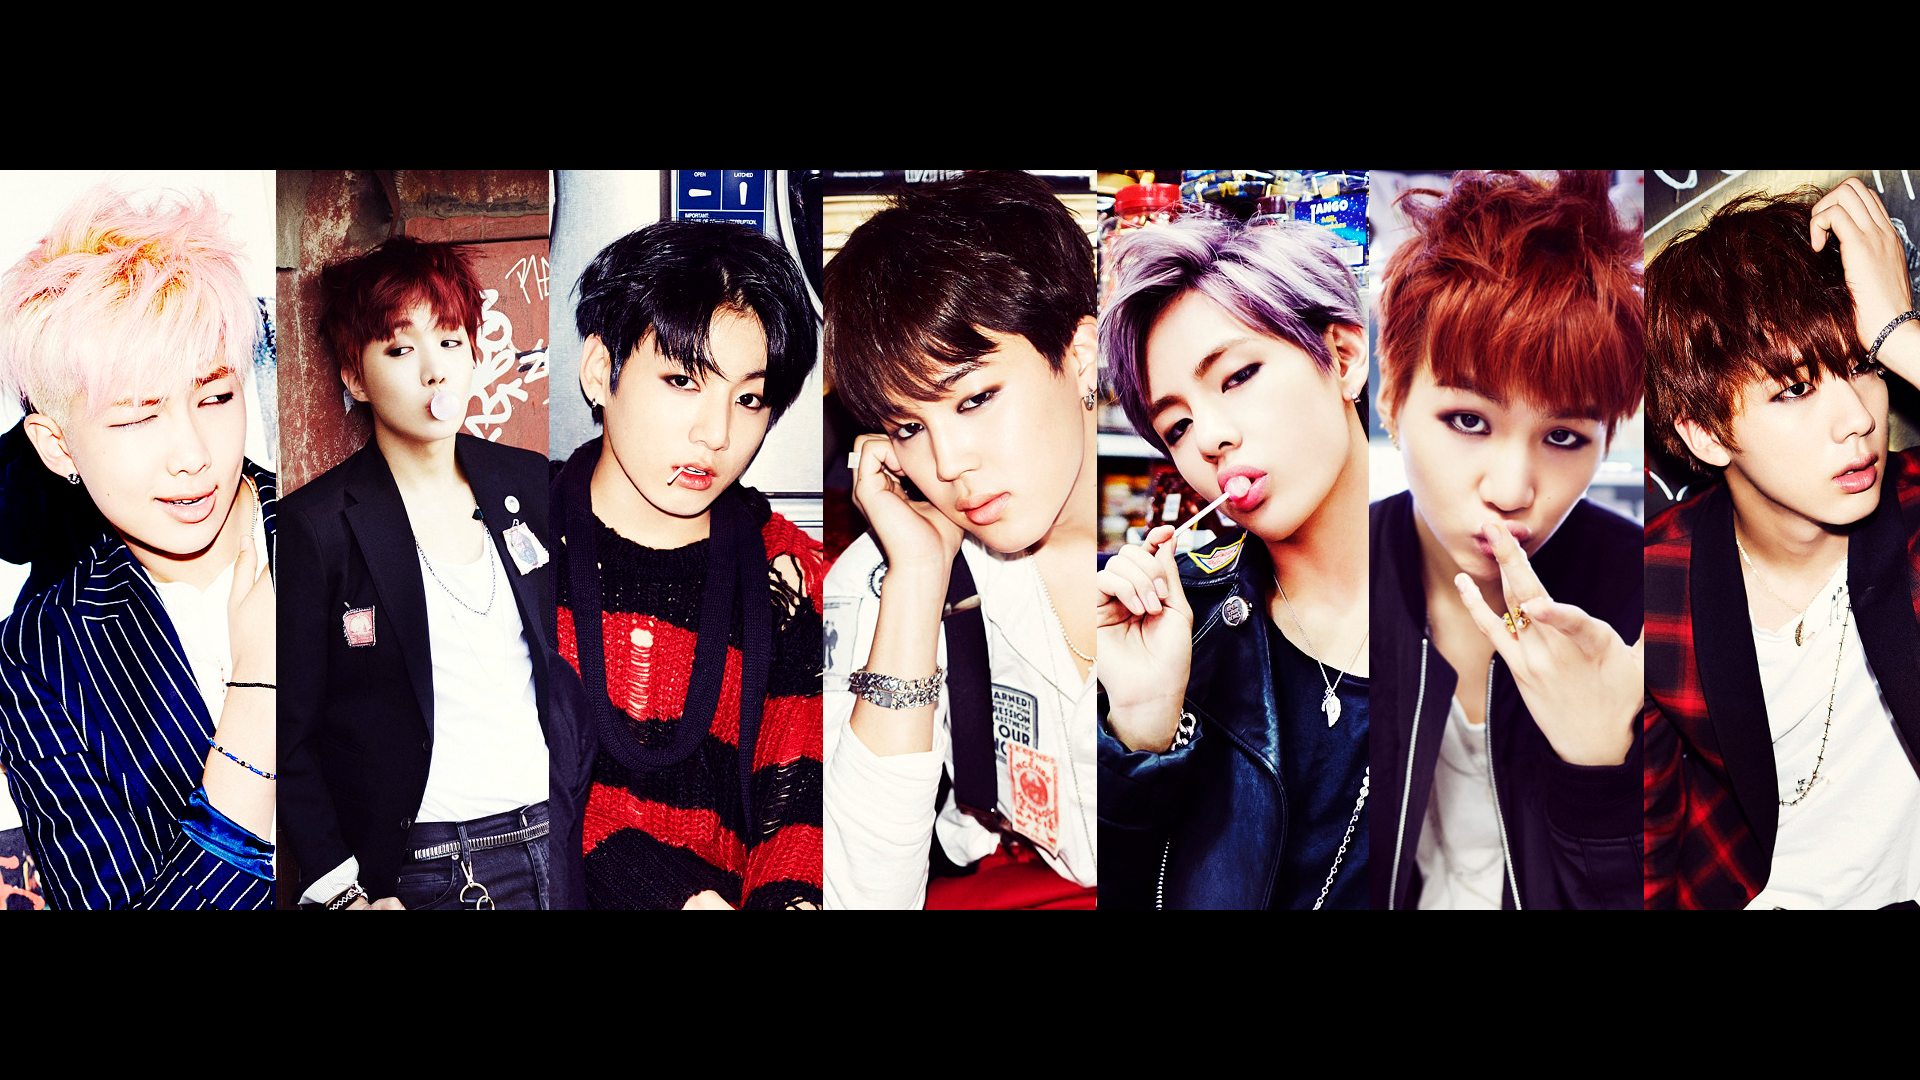 Unduh 400+ Wallpaper Bts Members